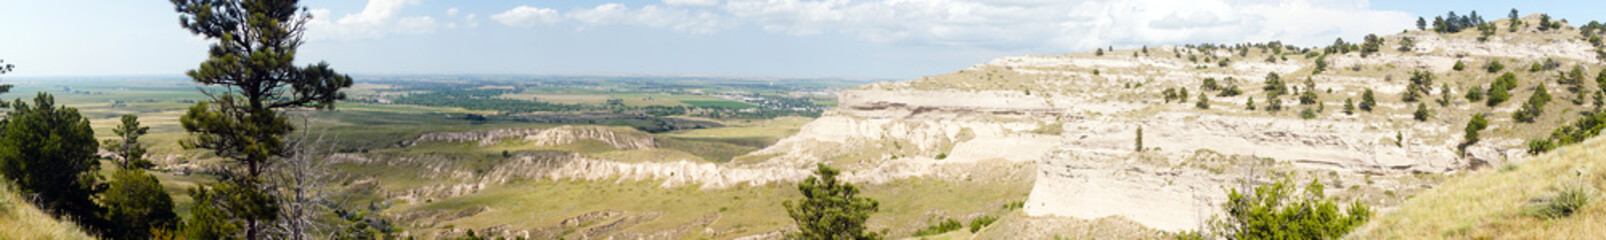 Scotts Bluff Monument Area Western Nebraska United States North America